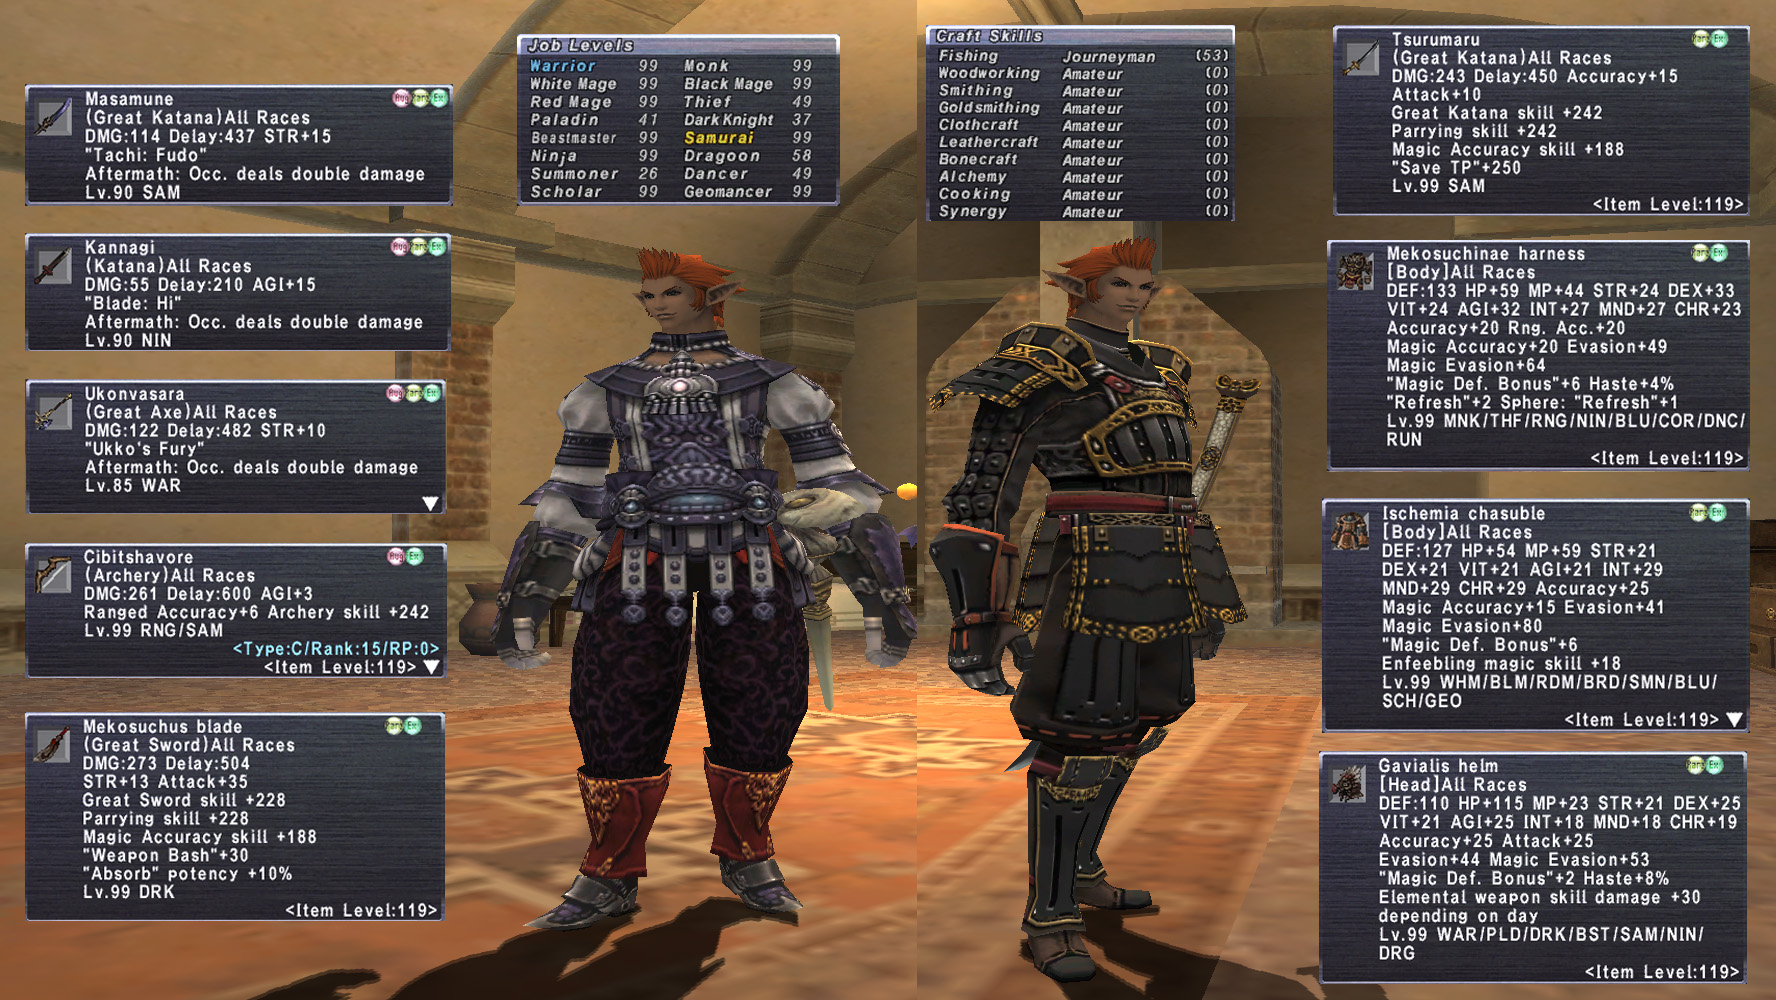 FFXI Account for Sale, Accountswappers